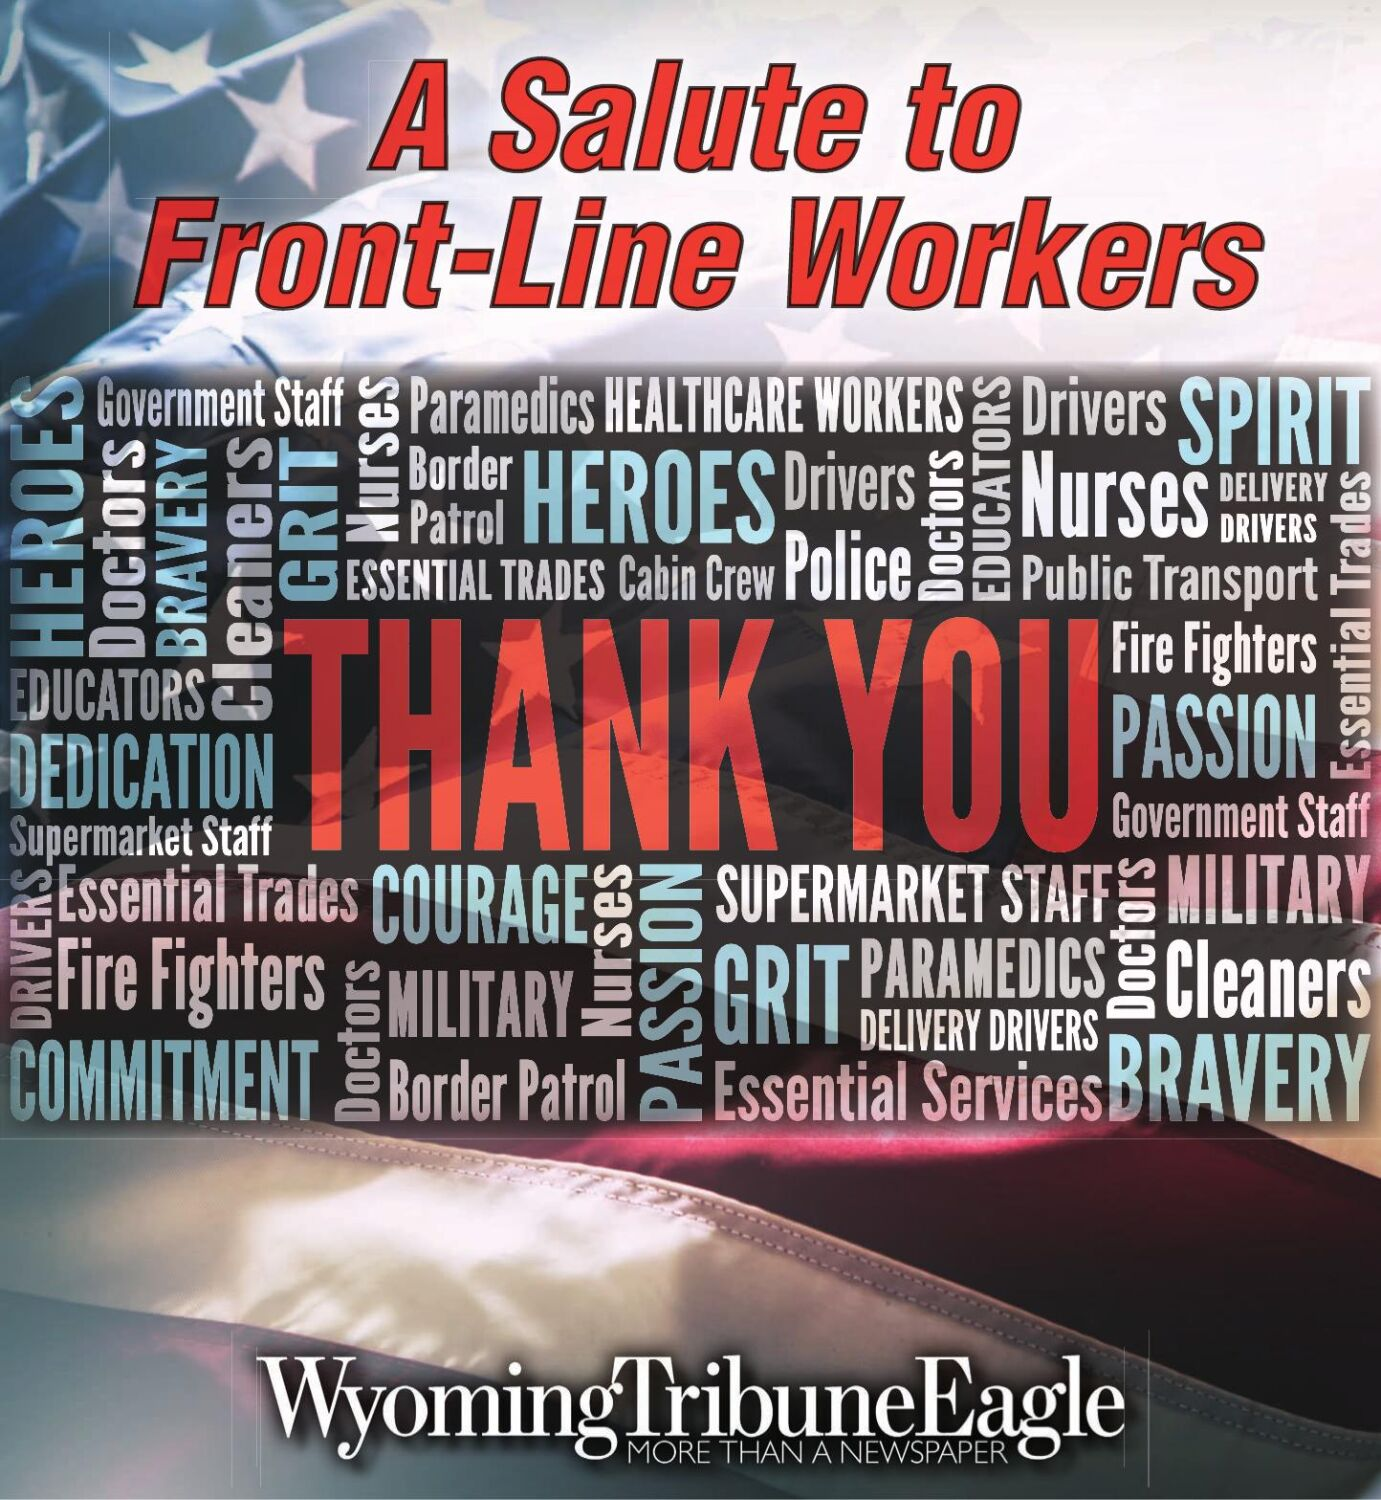 A Salute to Front-Line Workers